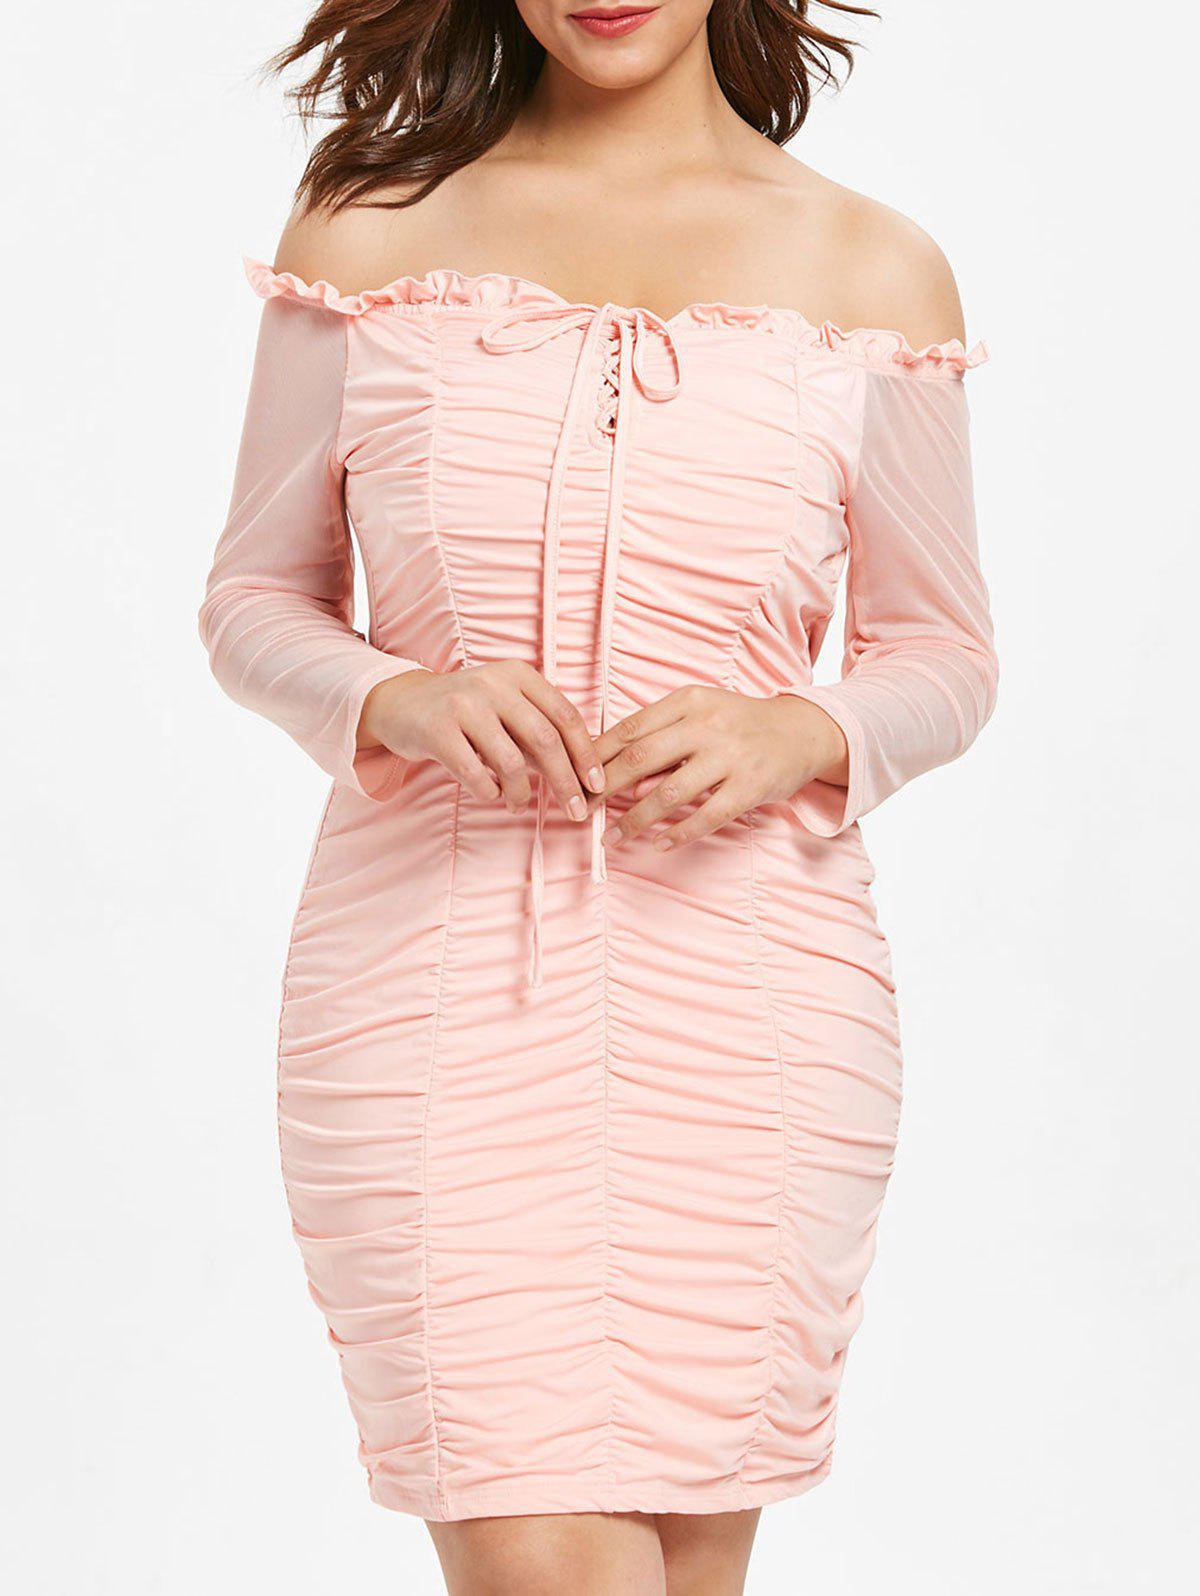 2bdb9d32eb7 33% OFF  Plus Size Lace Up Ruched Bodycon Dress